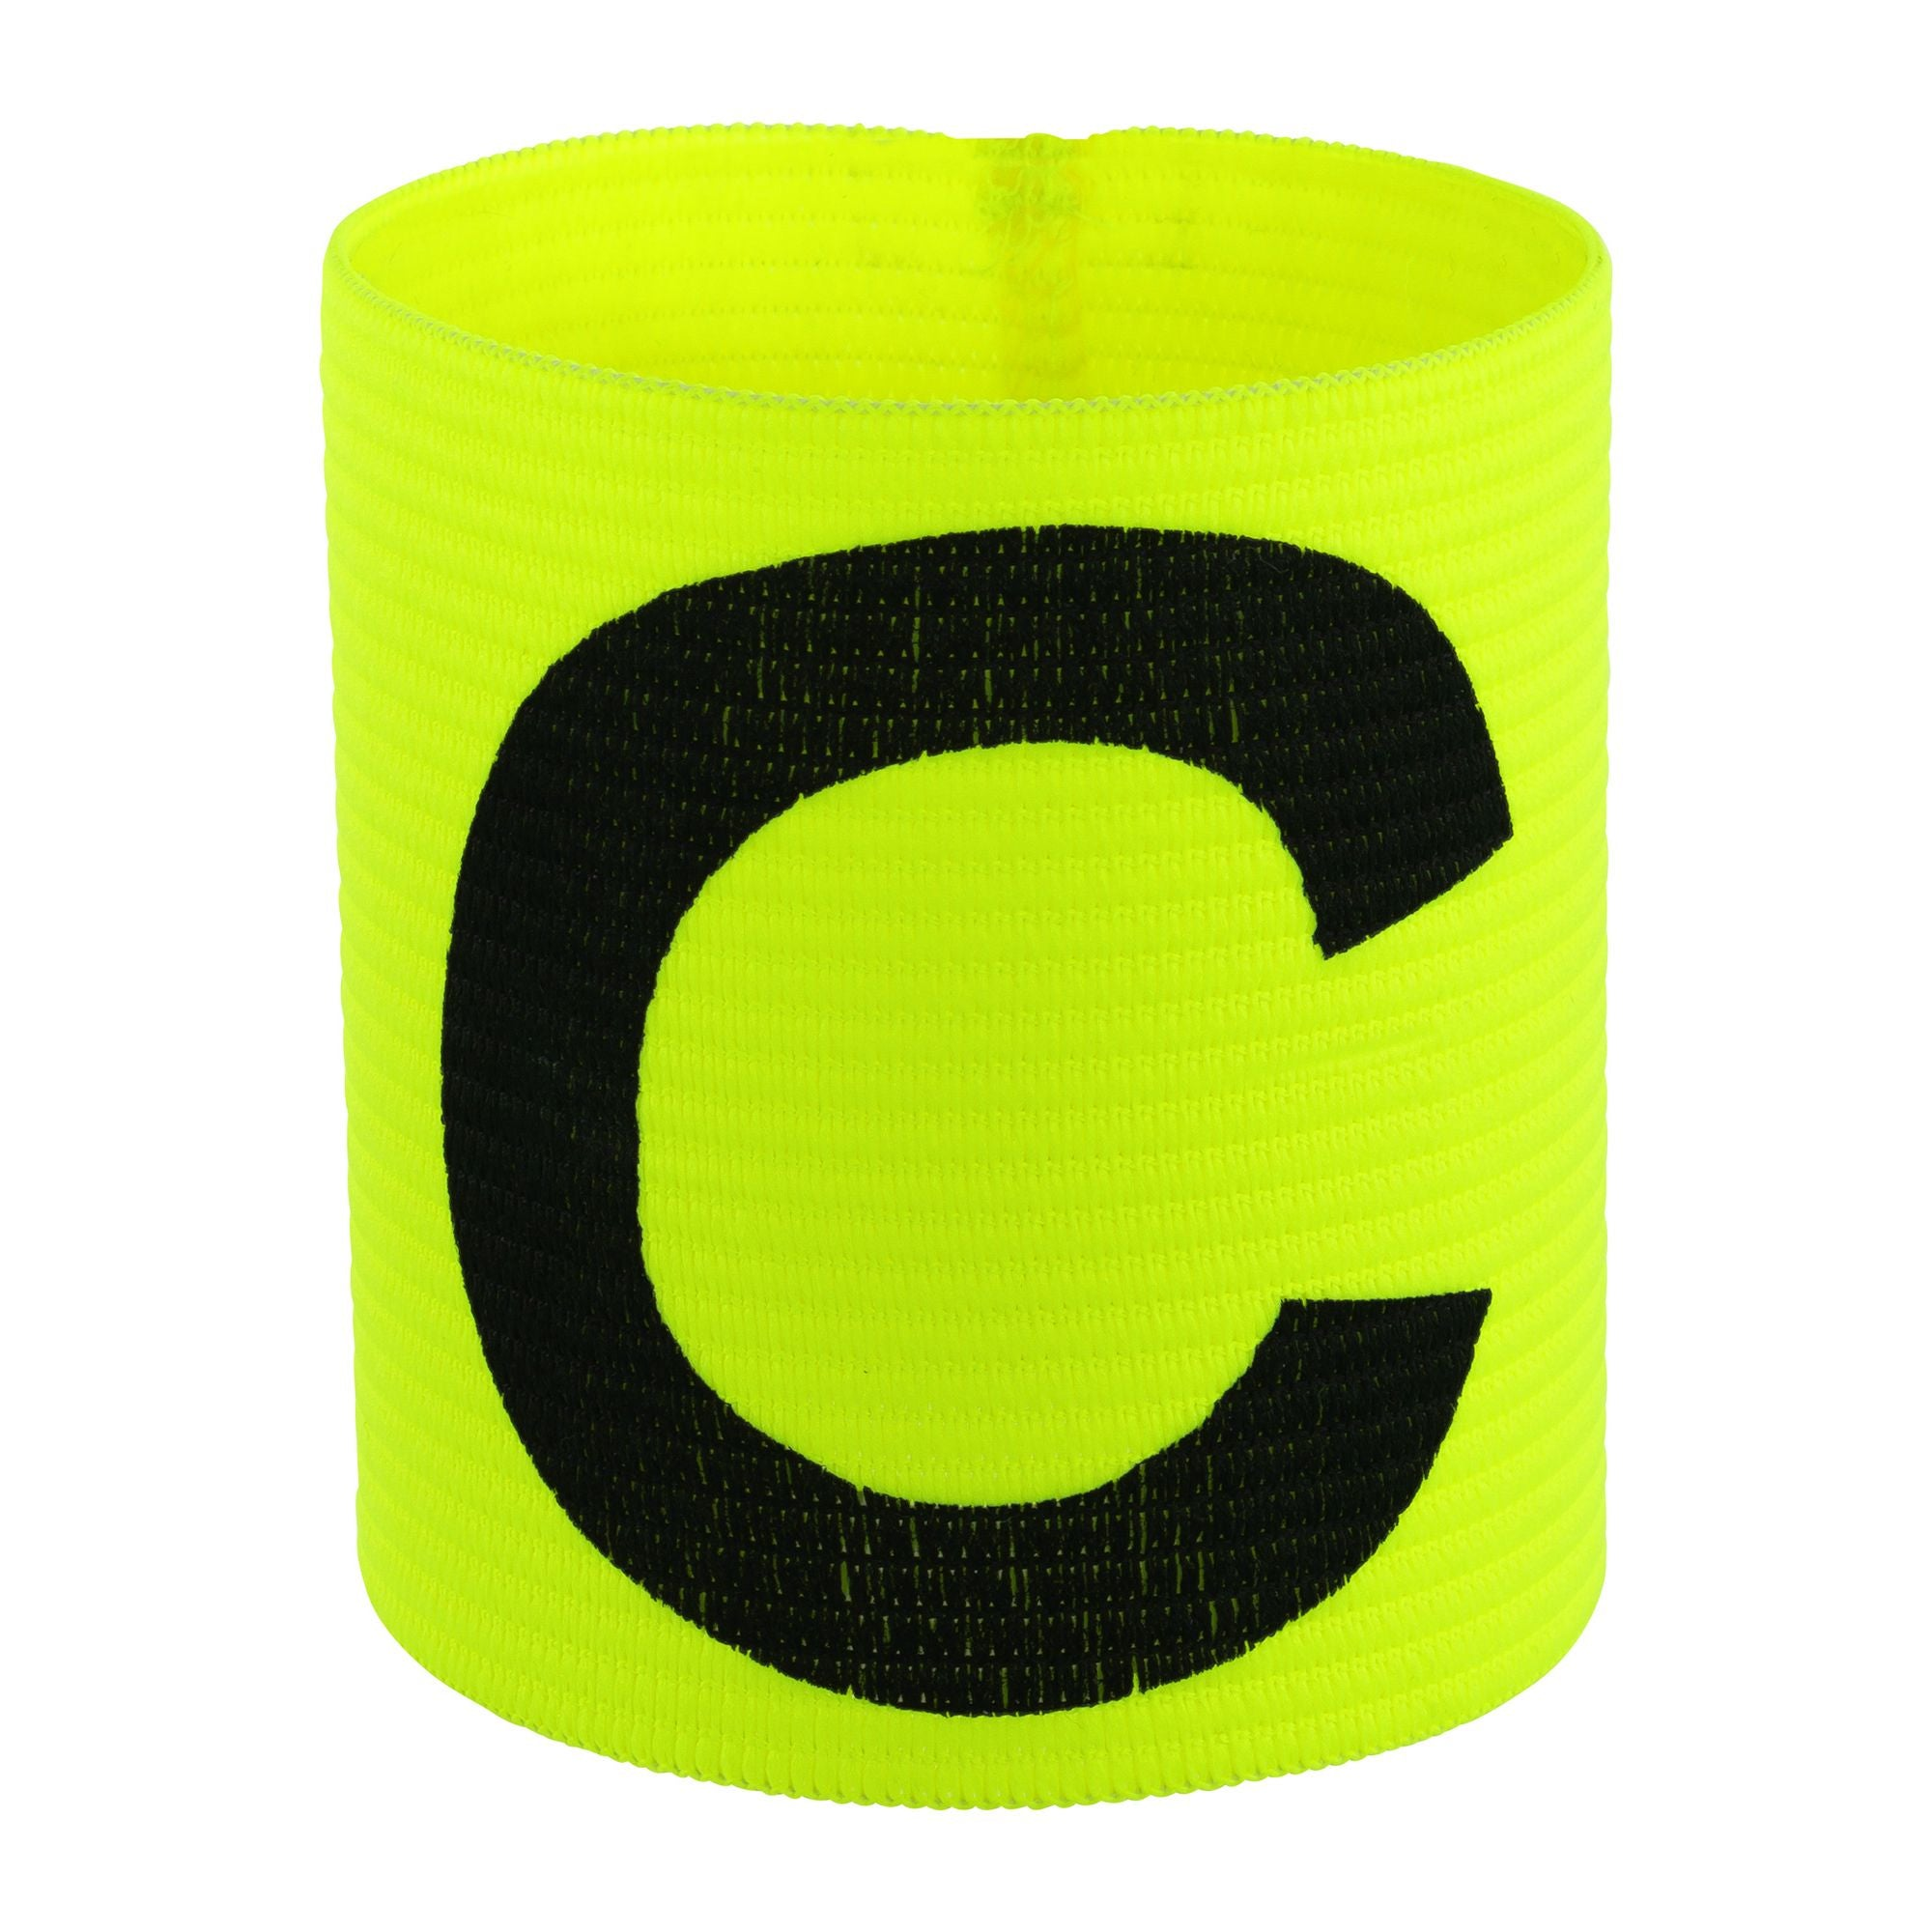 yellow captains armband with large black C